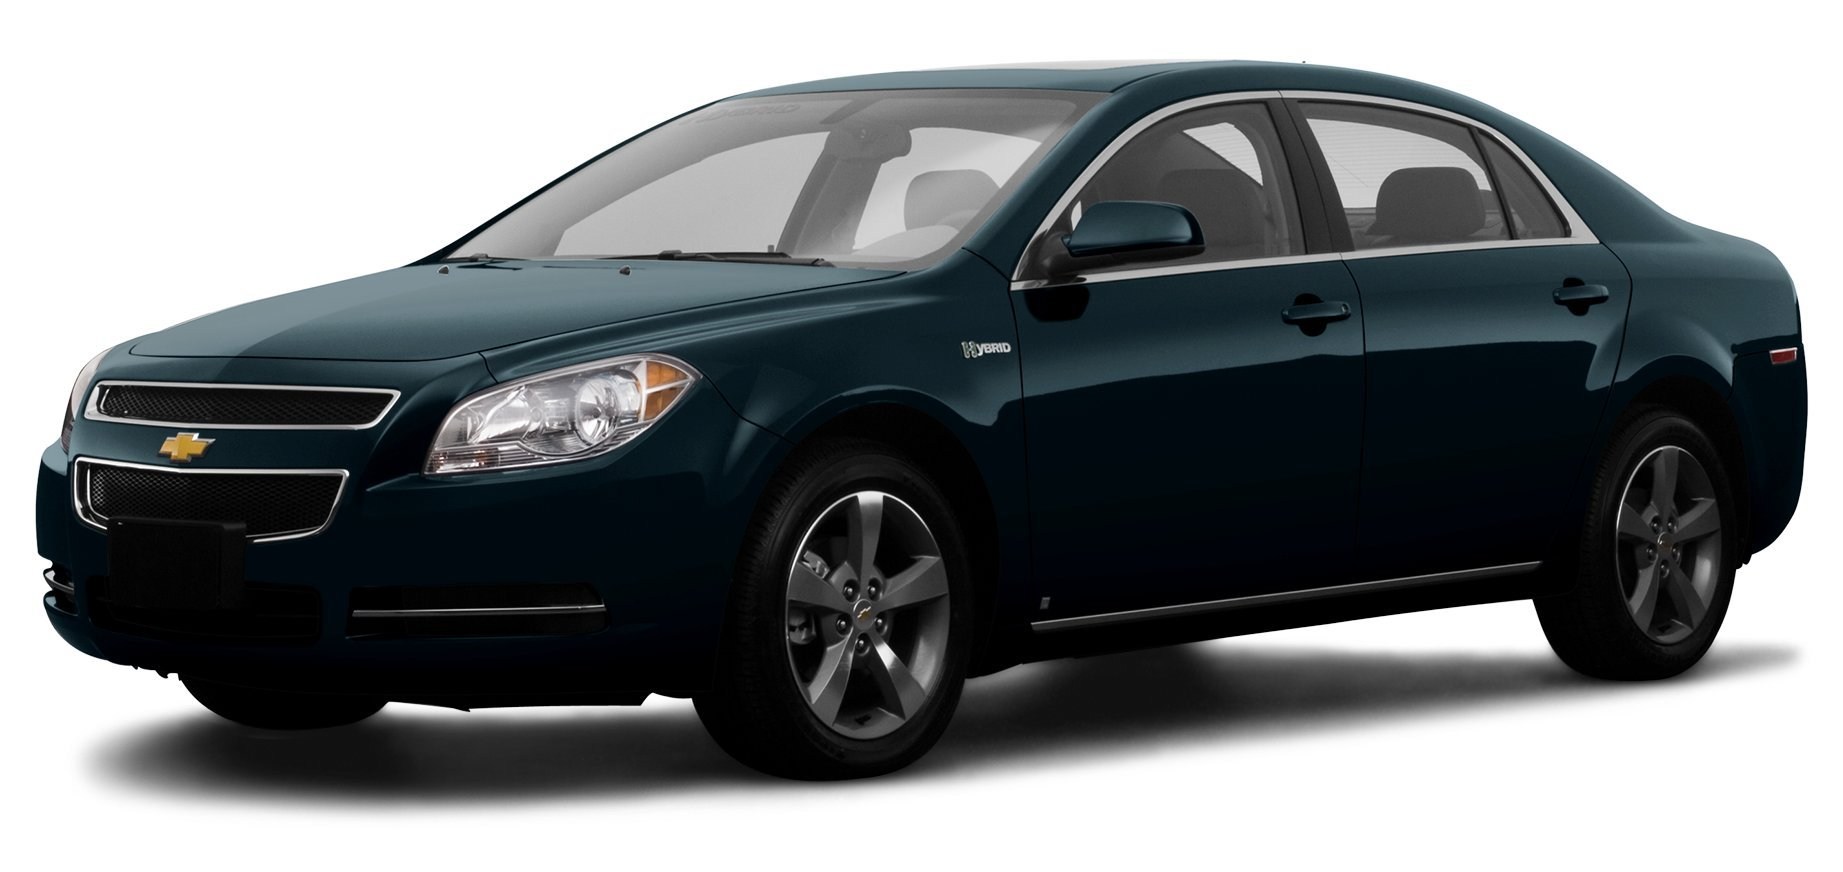 Amazon.com: 2009 Chevrolet Malibu Reviews, Images, and Specs: Vehicles